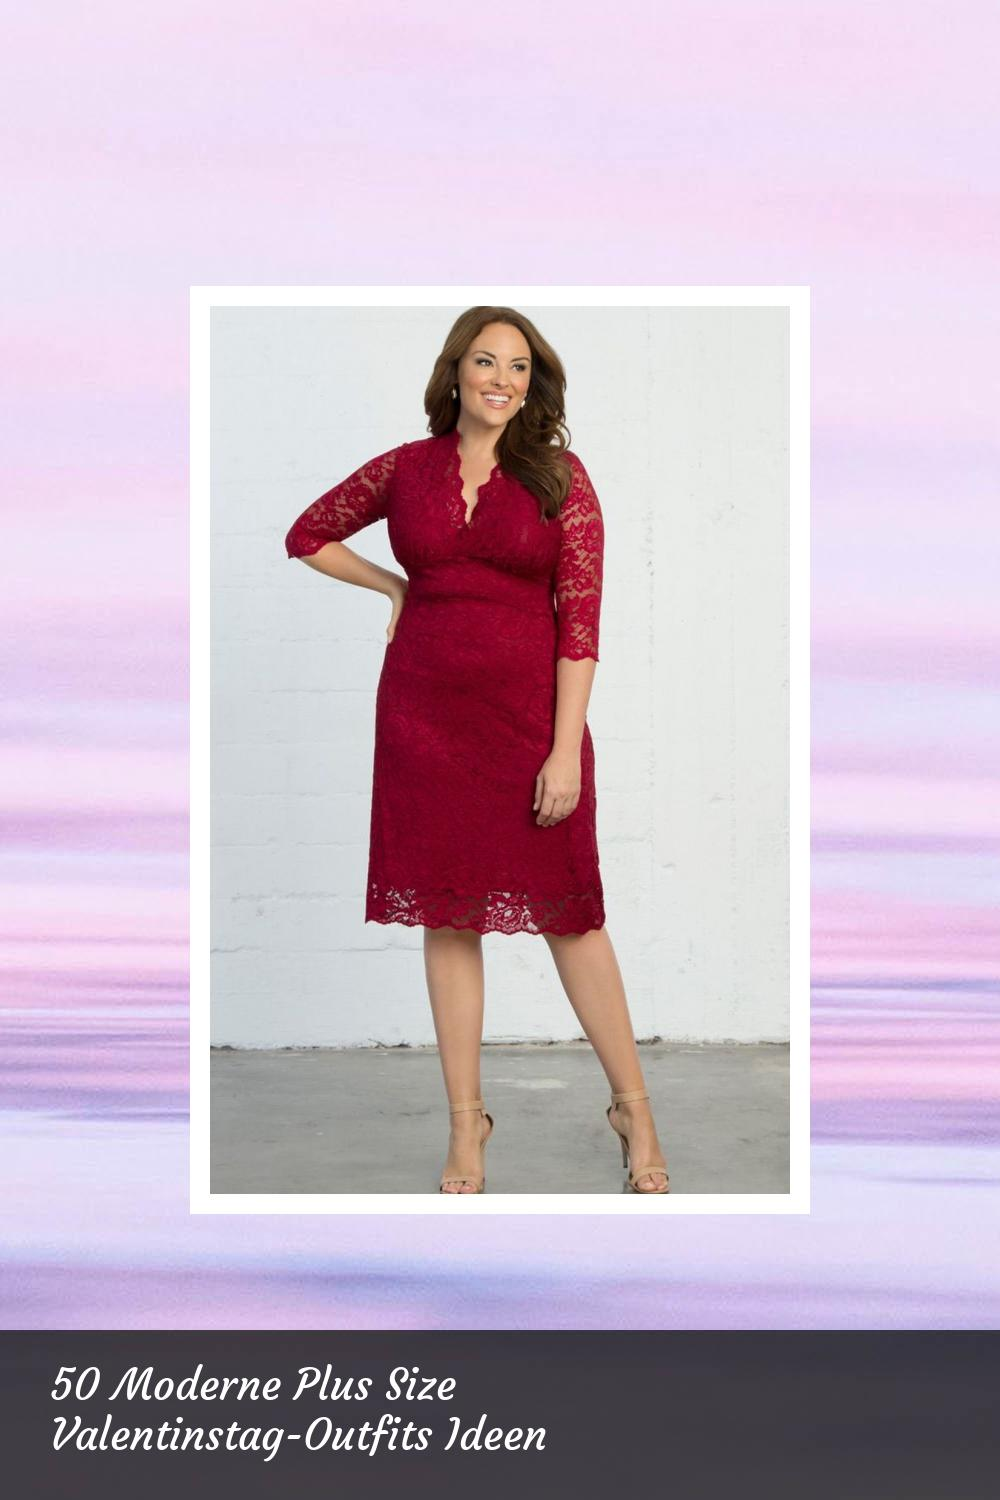 50 Moderne Plus Size Valentinstag-Outfits Ideen 27